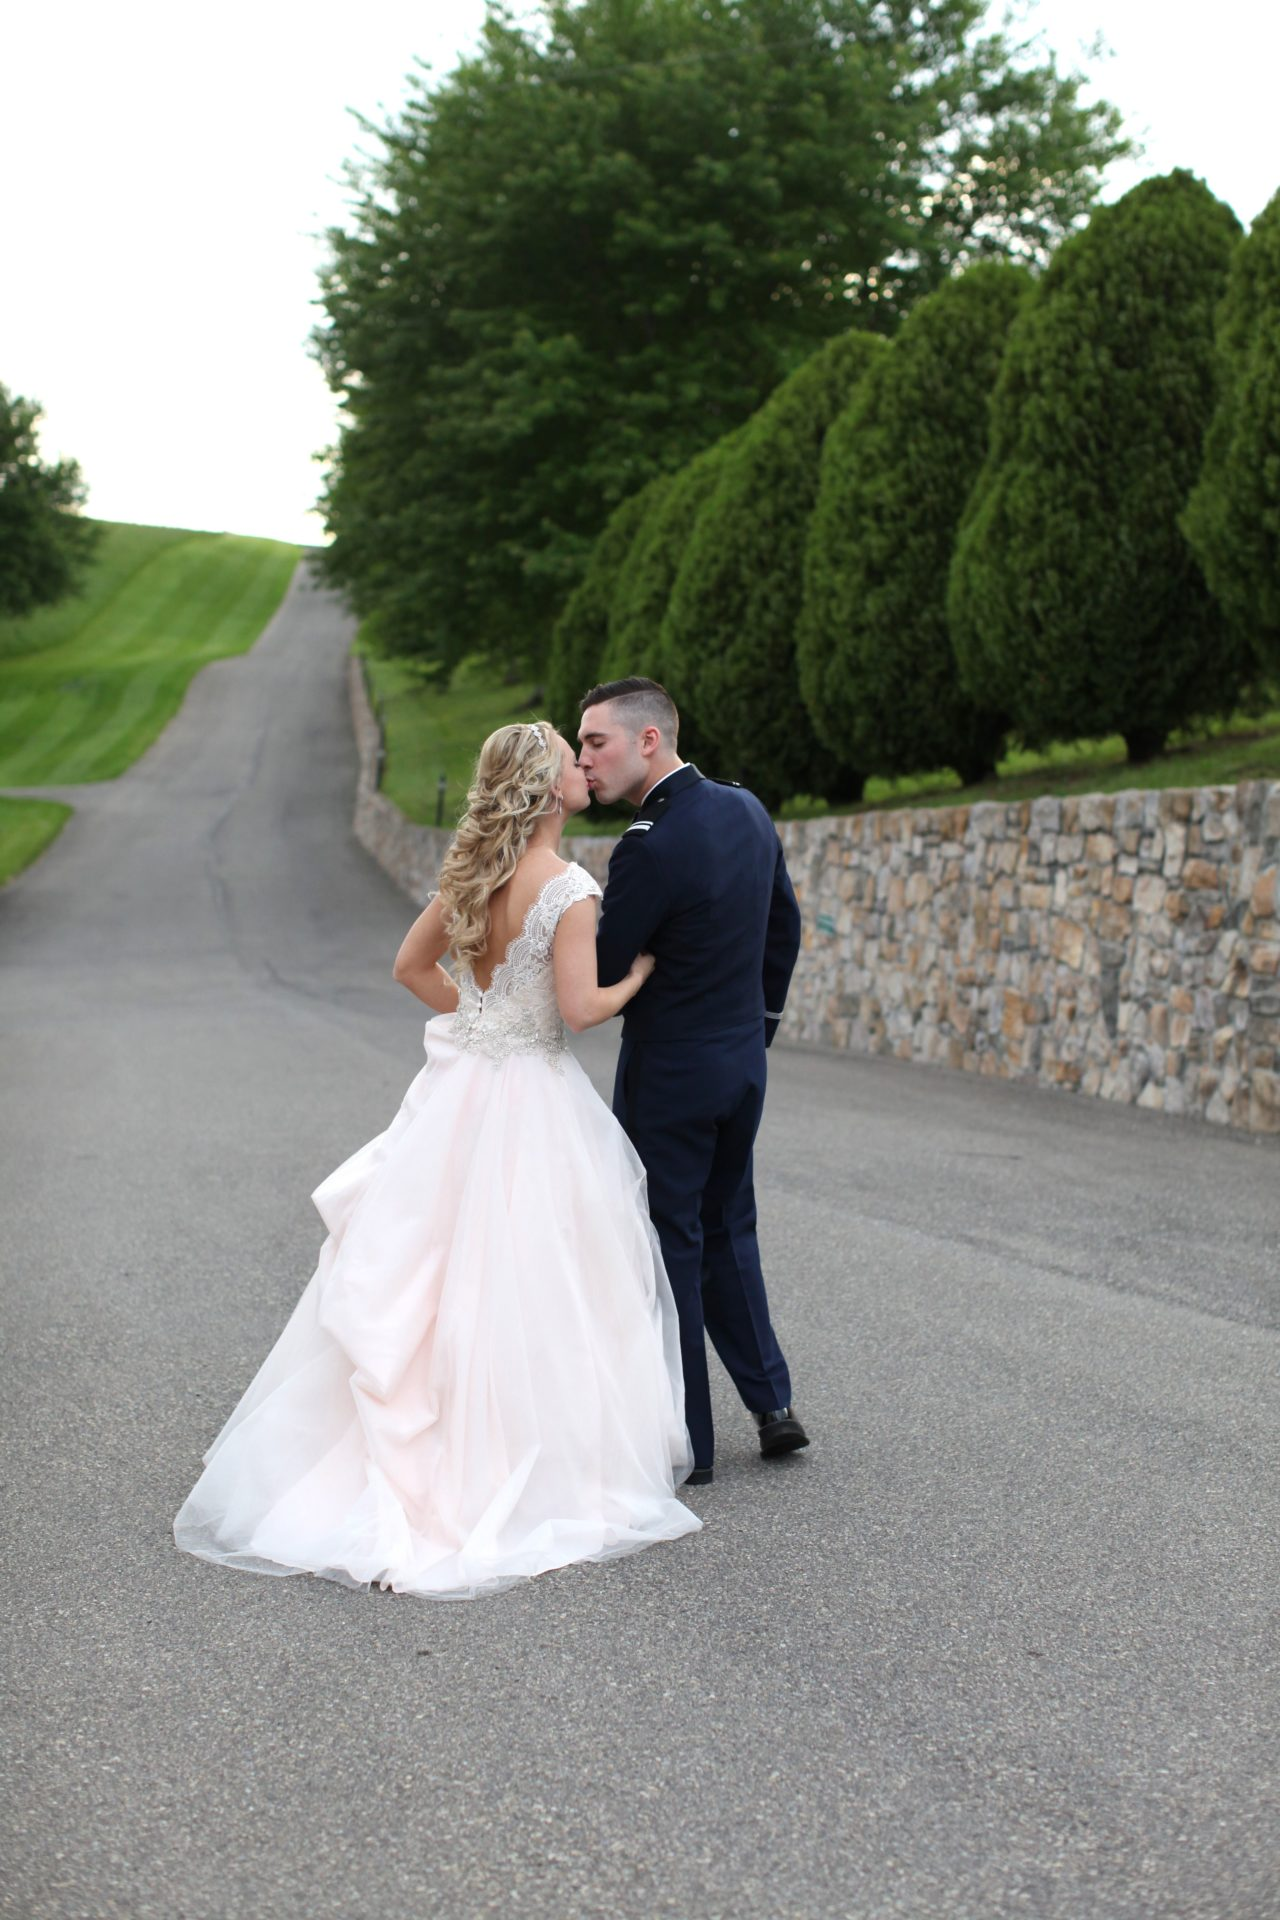 Bride and groom kiss in driveway of Morningside Inn wedding venue in Maryland